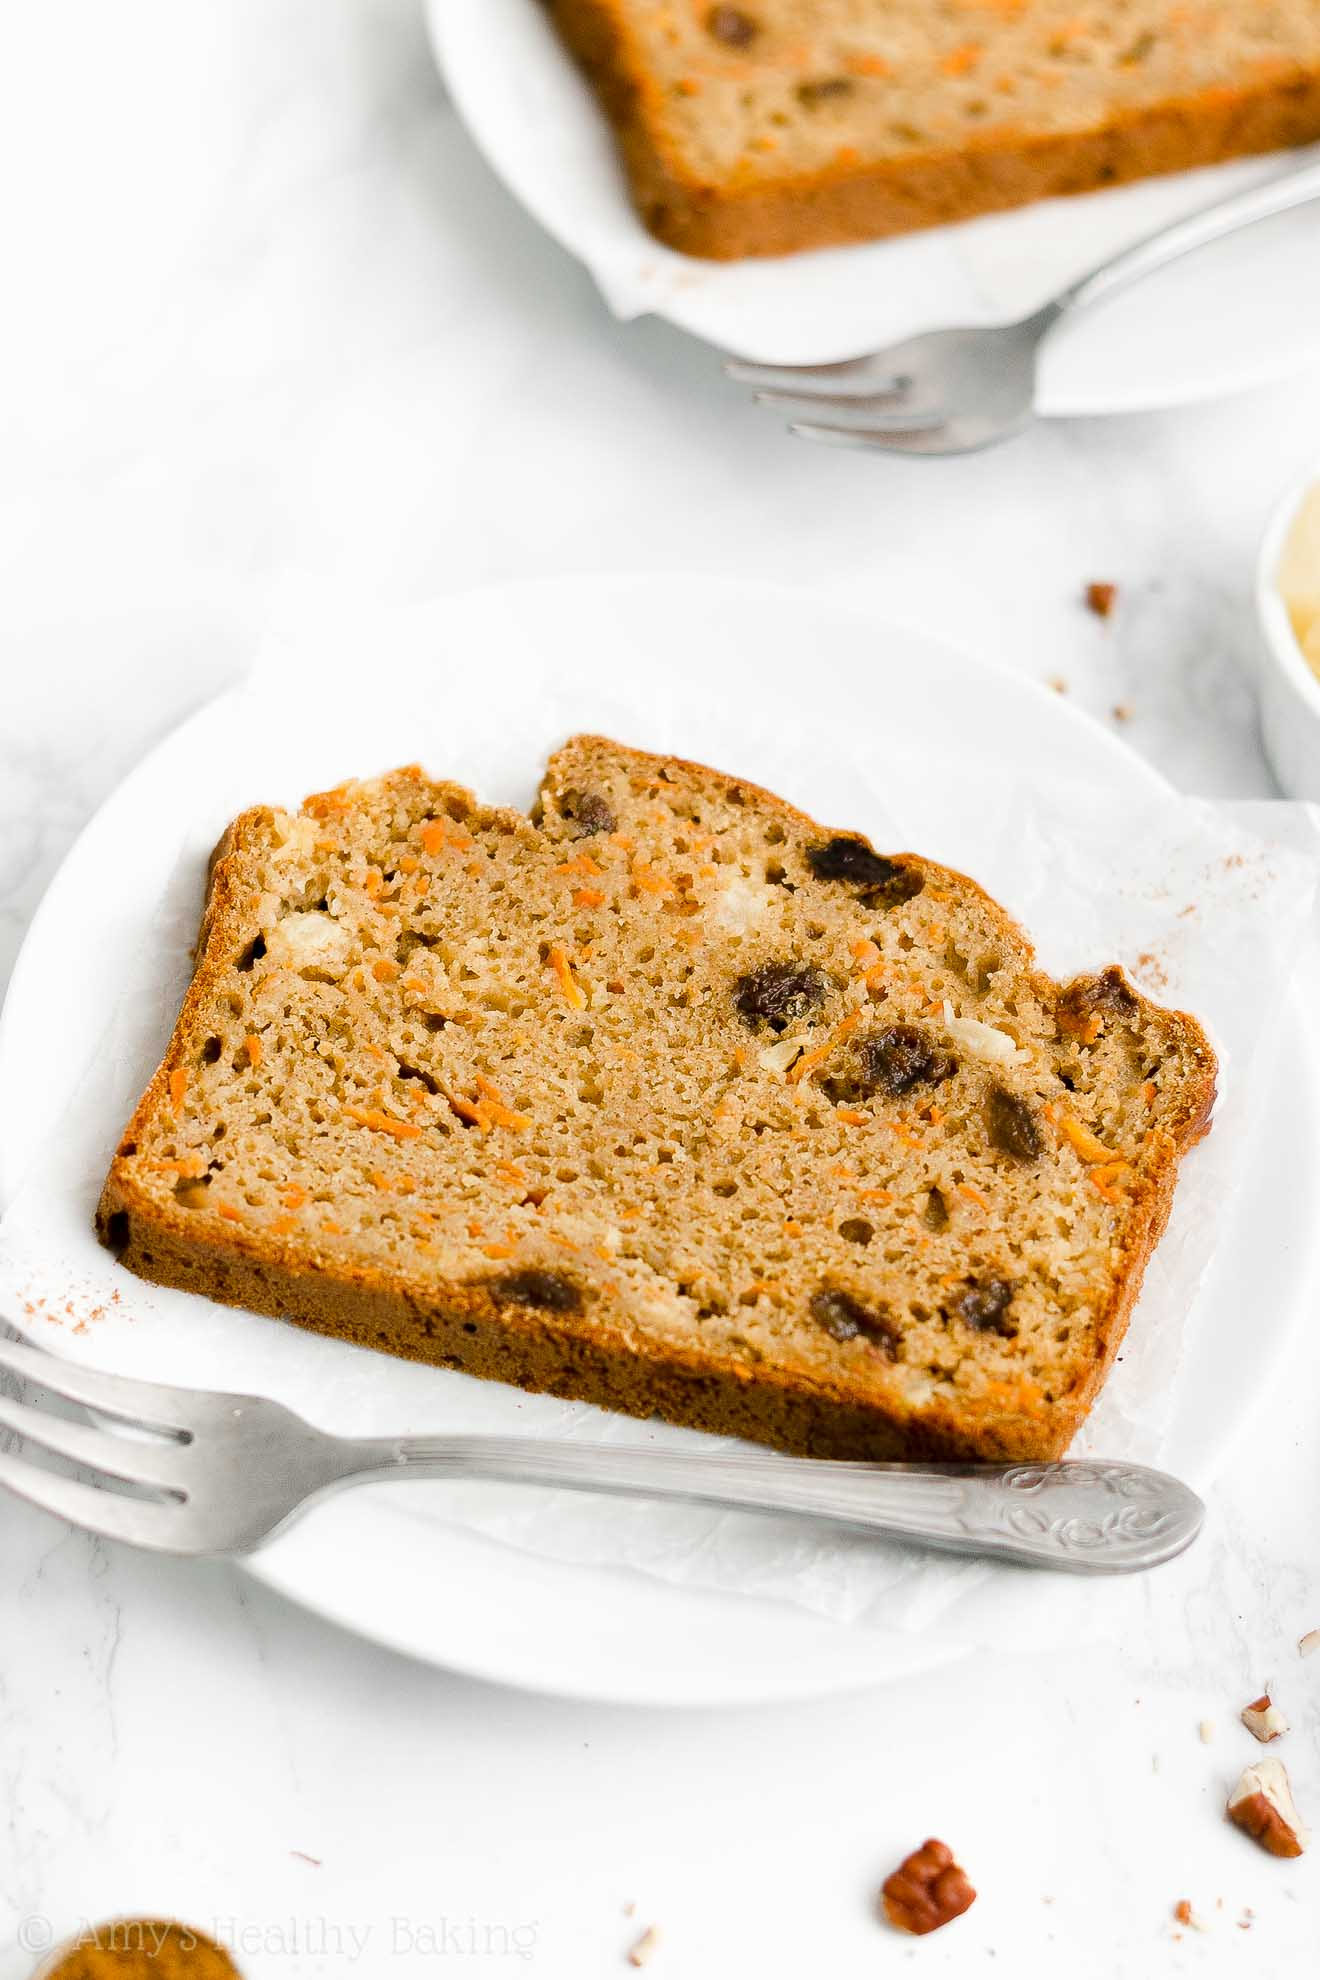 Best Easy Healthy Low Calorie Super Moist Pineapple Raisin Carrot Pound Cake